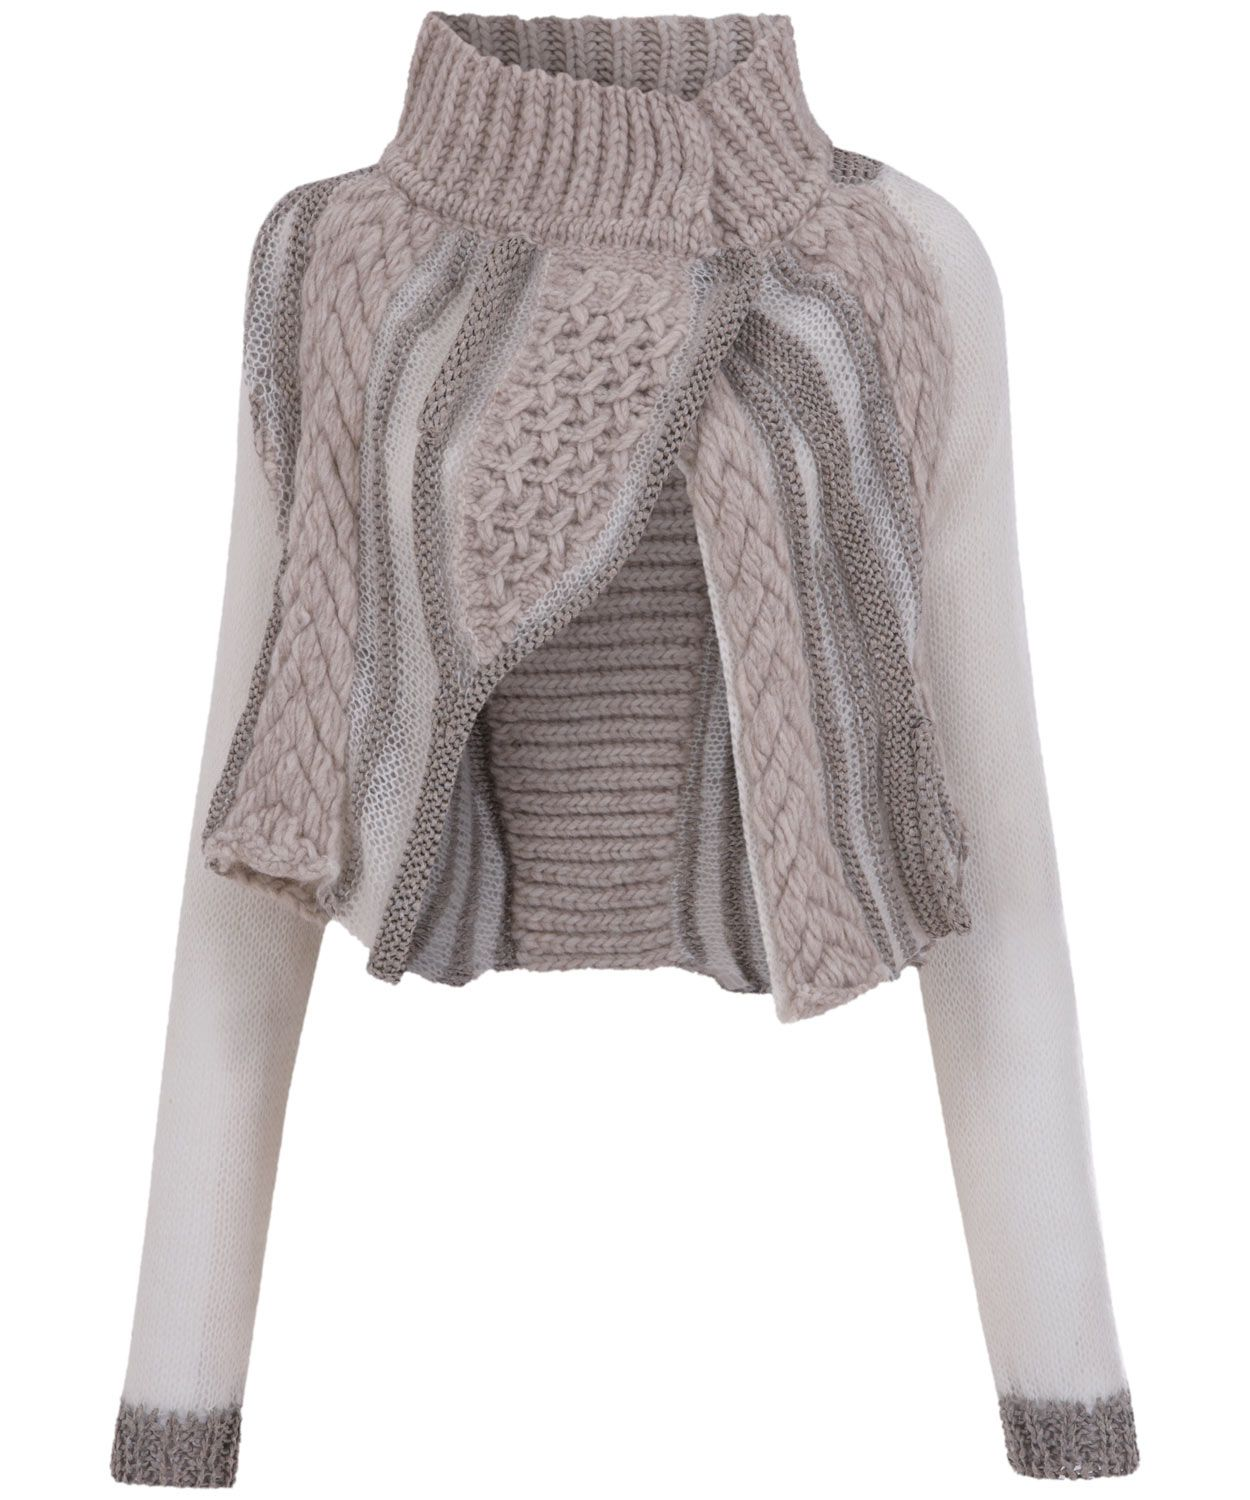 Beige Chunky Knit Cropped Cardigan, Crea Concept. | Knitwear ...